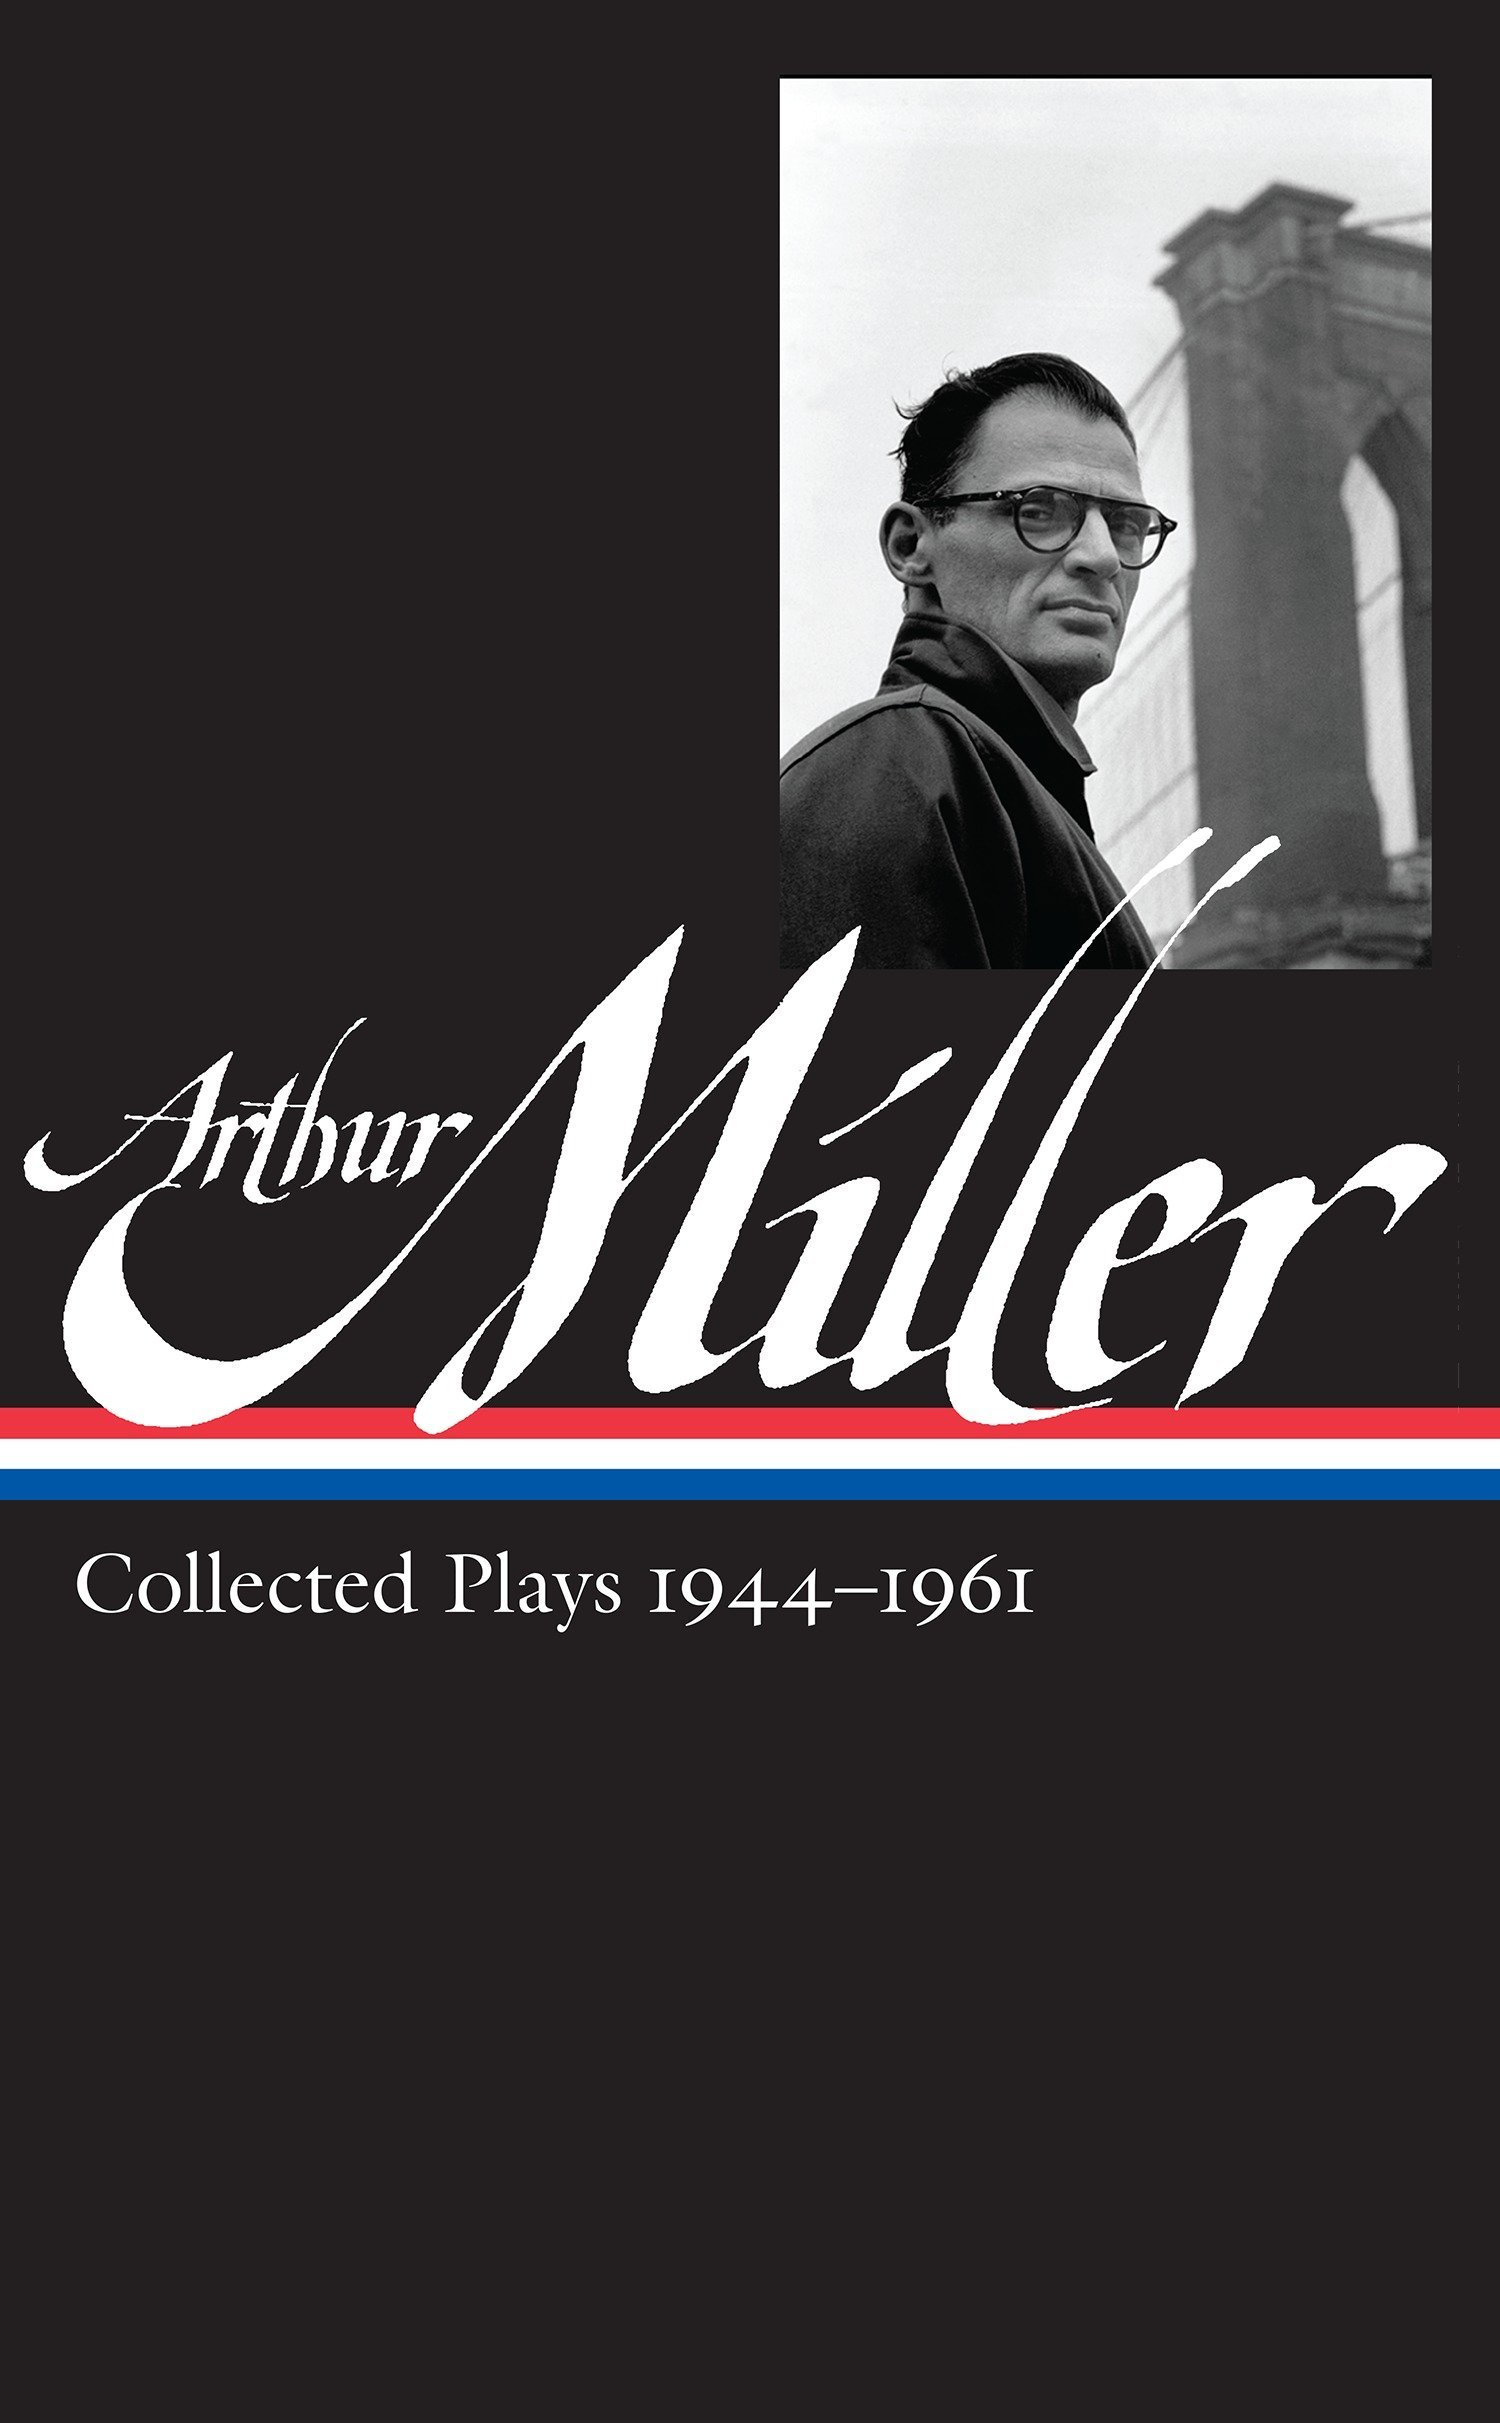 arthur miller collected plays vol 1 1944 1961 loa 163 library of america arthur miller edition